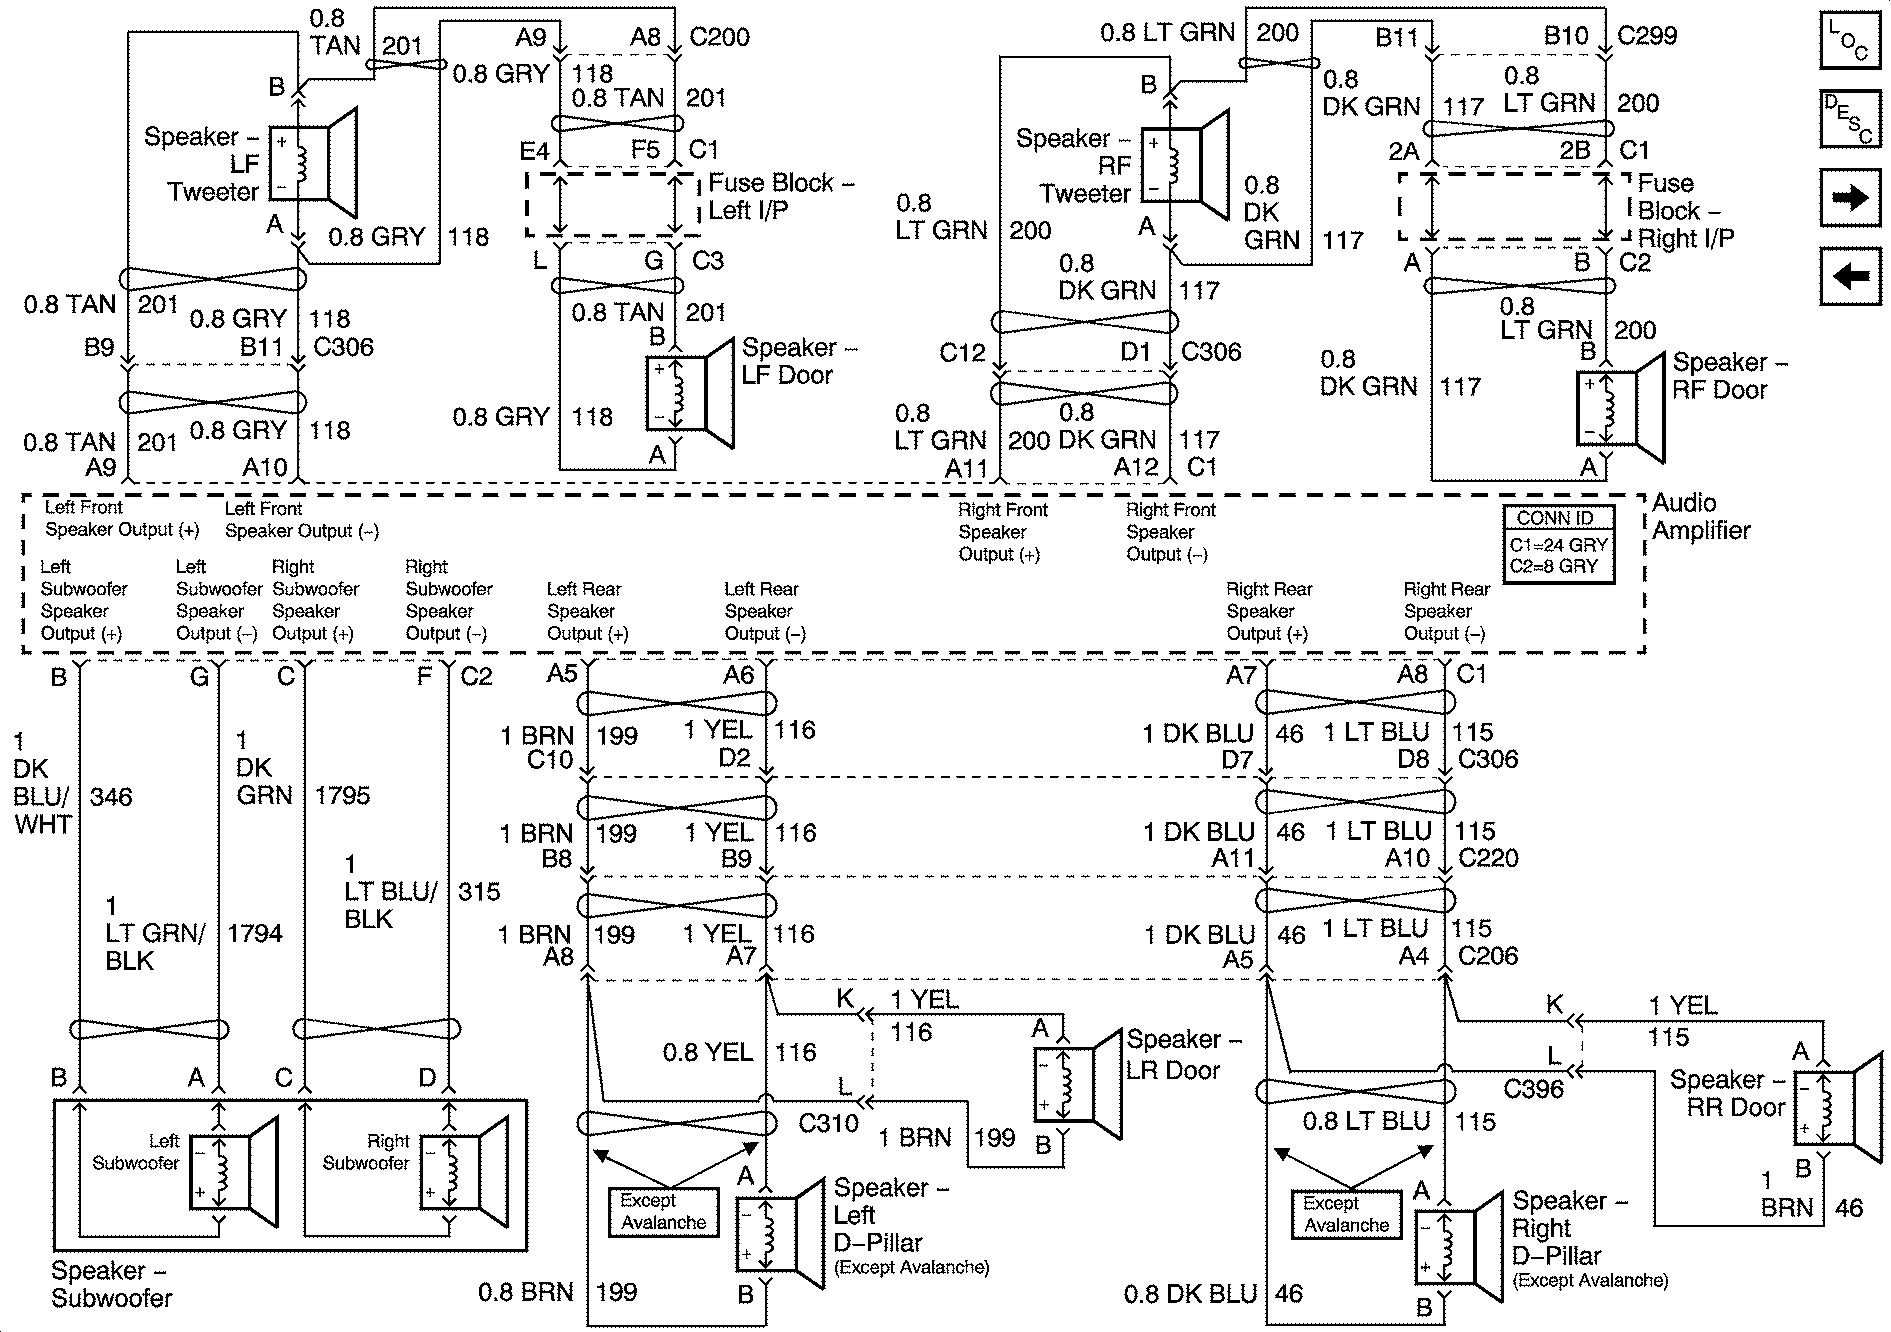 2004 chevy colorado radio wiring diagram power 2004 chevy avalanche radio wiring diagram | free wiring ...